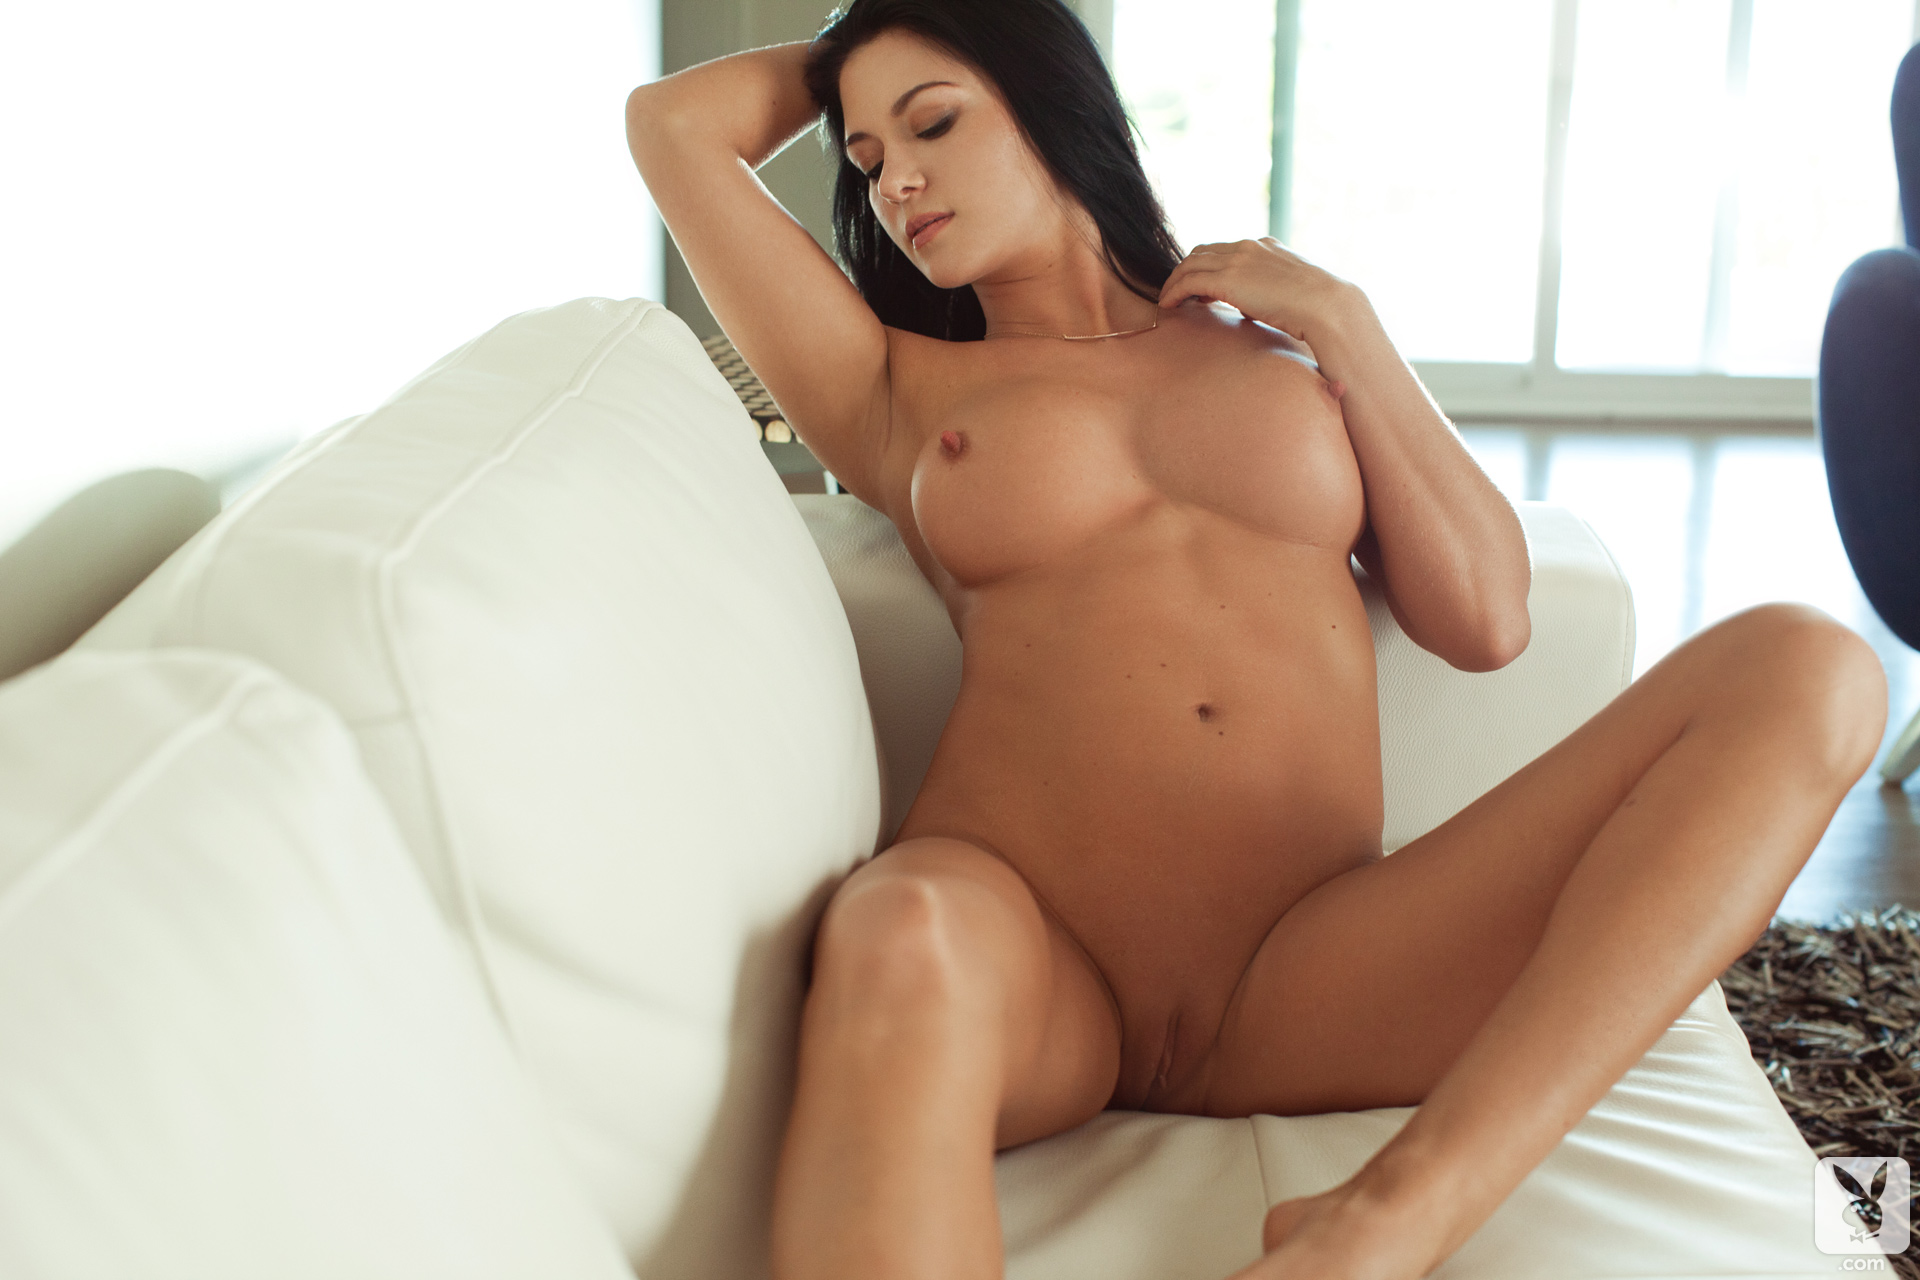 Latina nude gorgeous